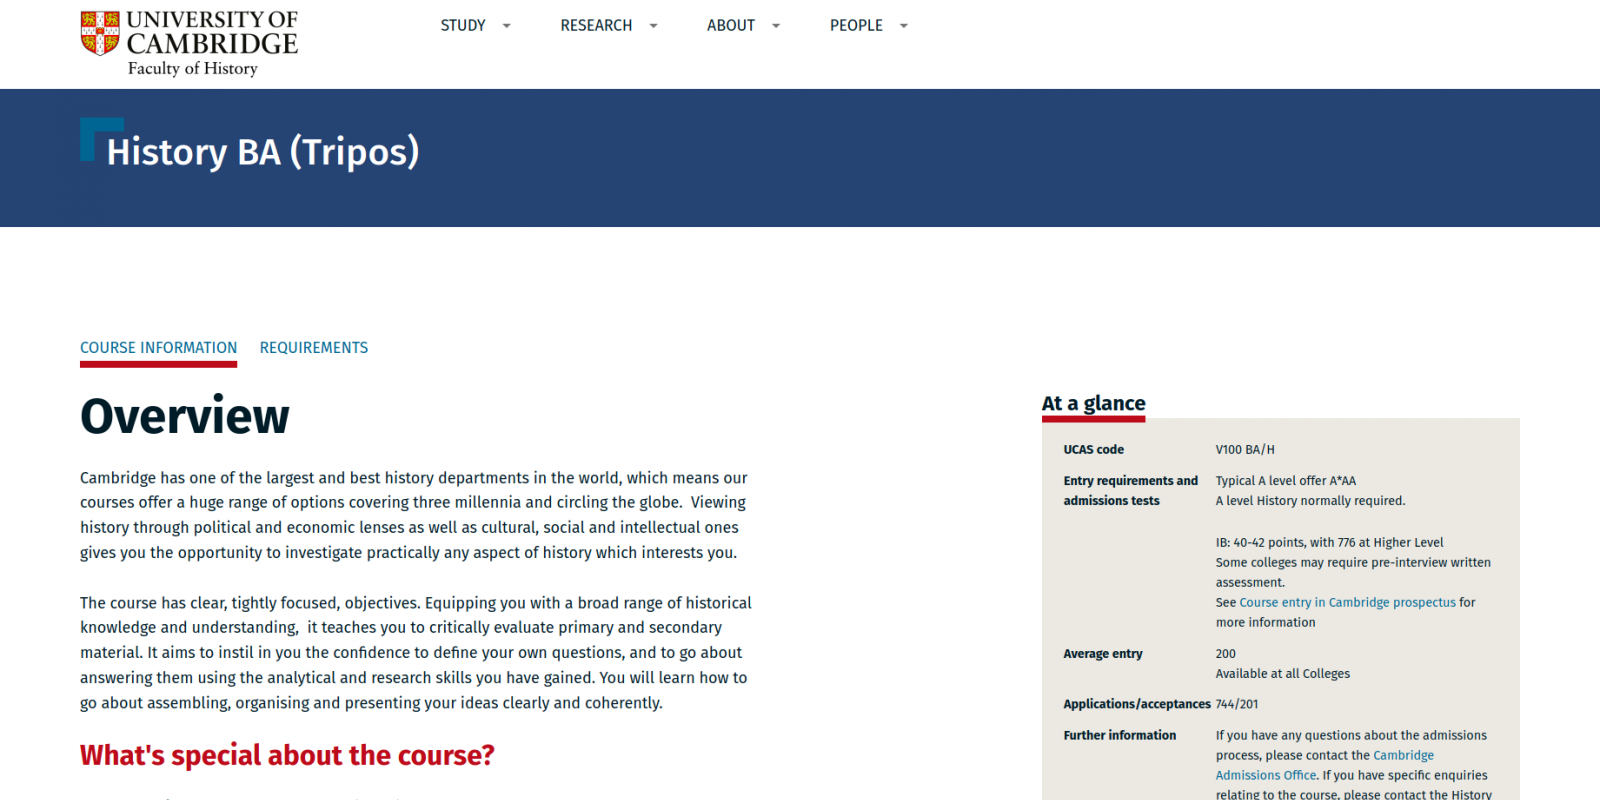 Faculty of History - University of Cambridge - website course detail page